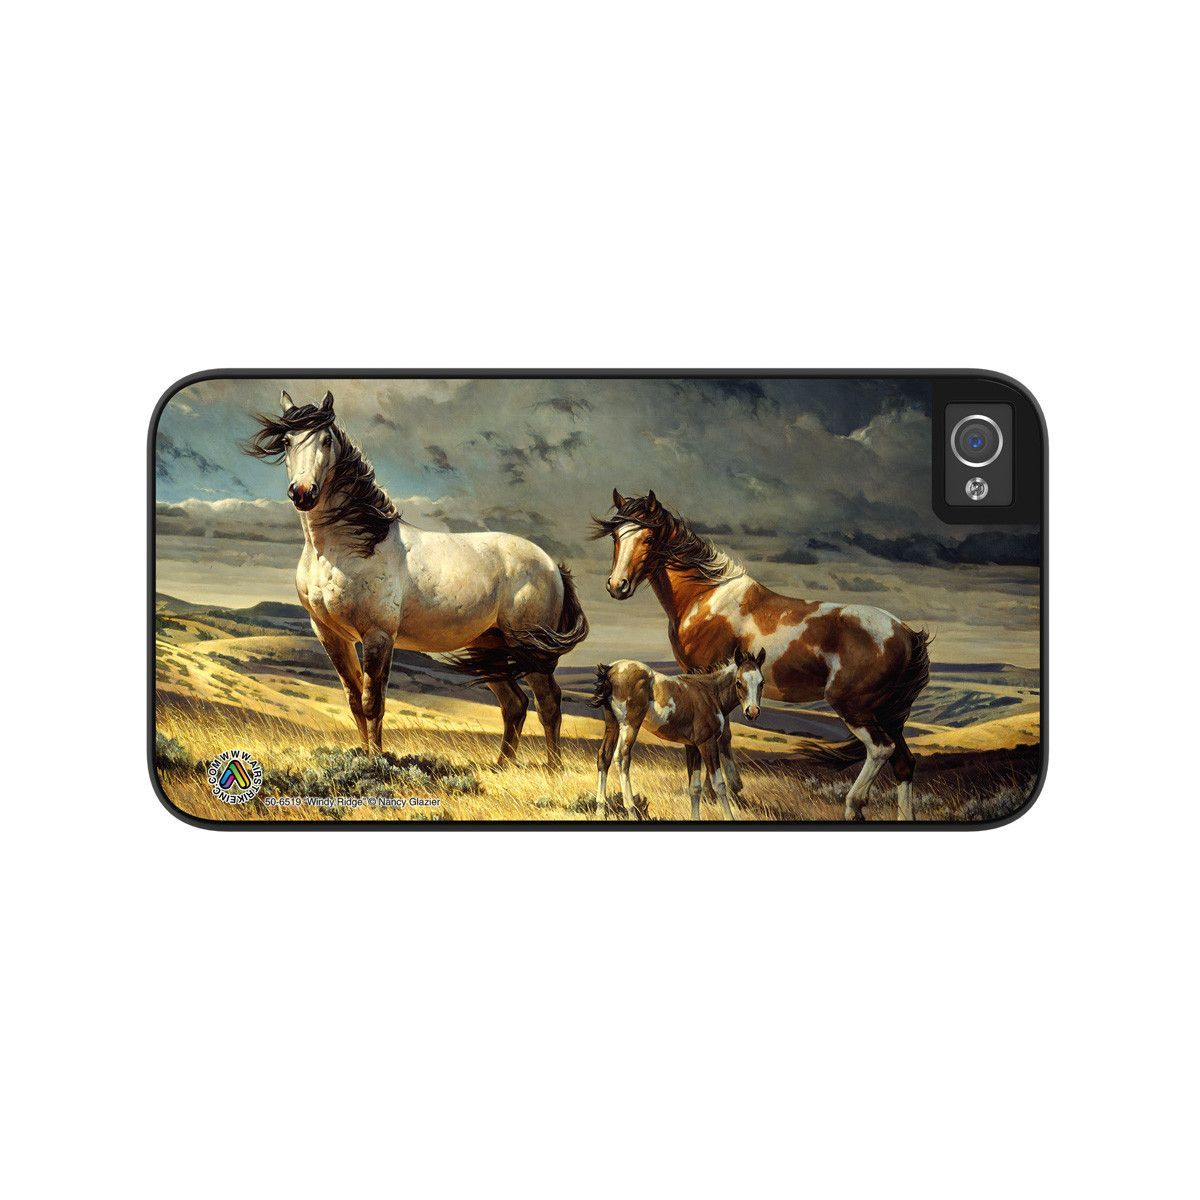 Top Wallpaper Horse Iphone 5c - aa3b877e77f63e898f0f6fab7f55d846  Graphic_765927.jpg